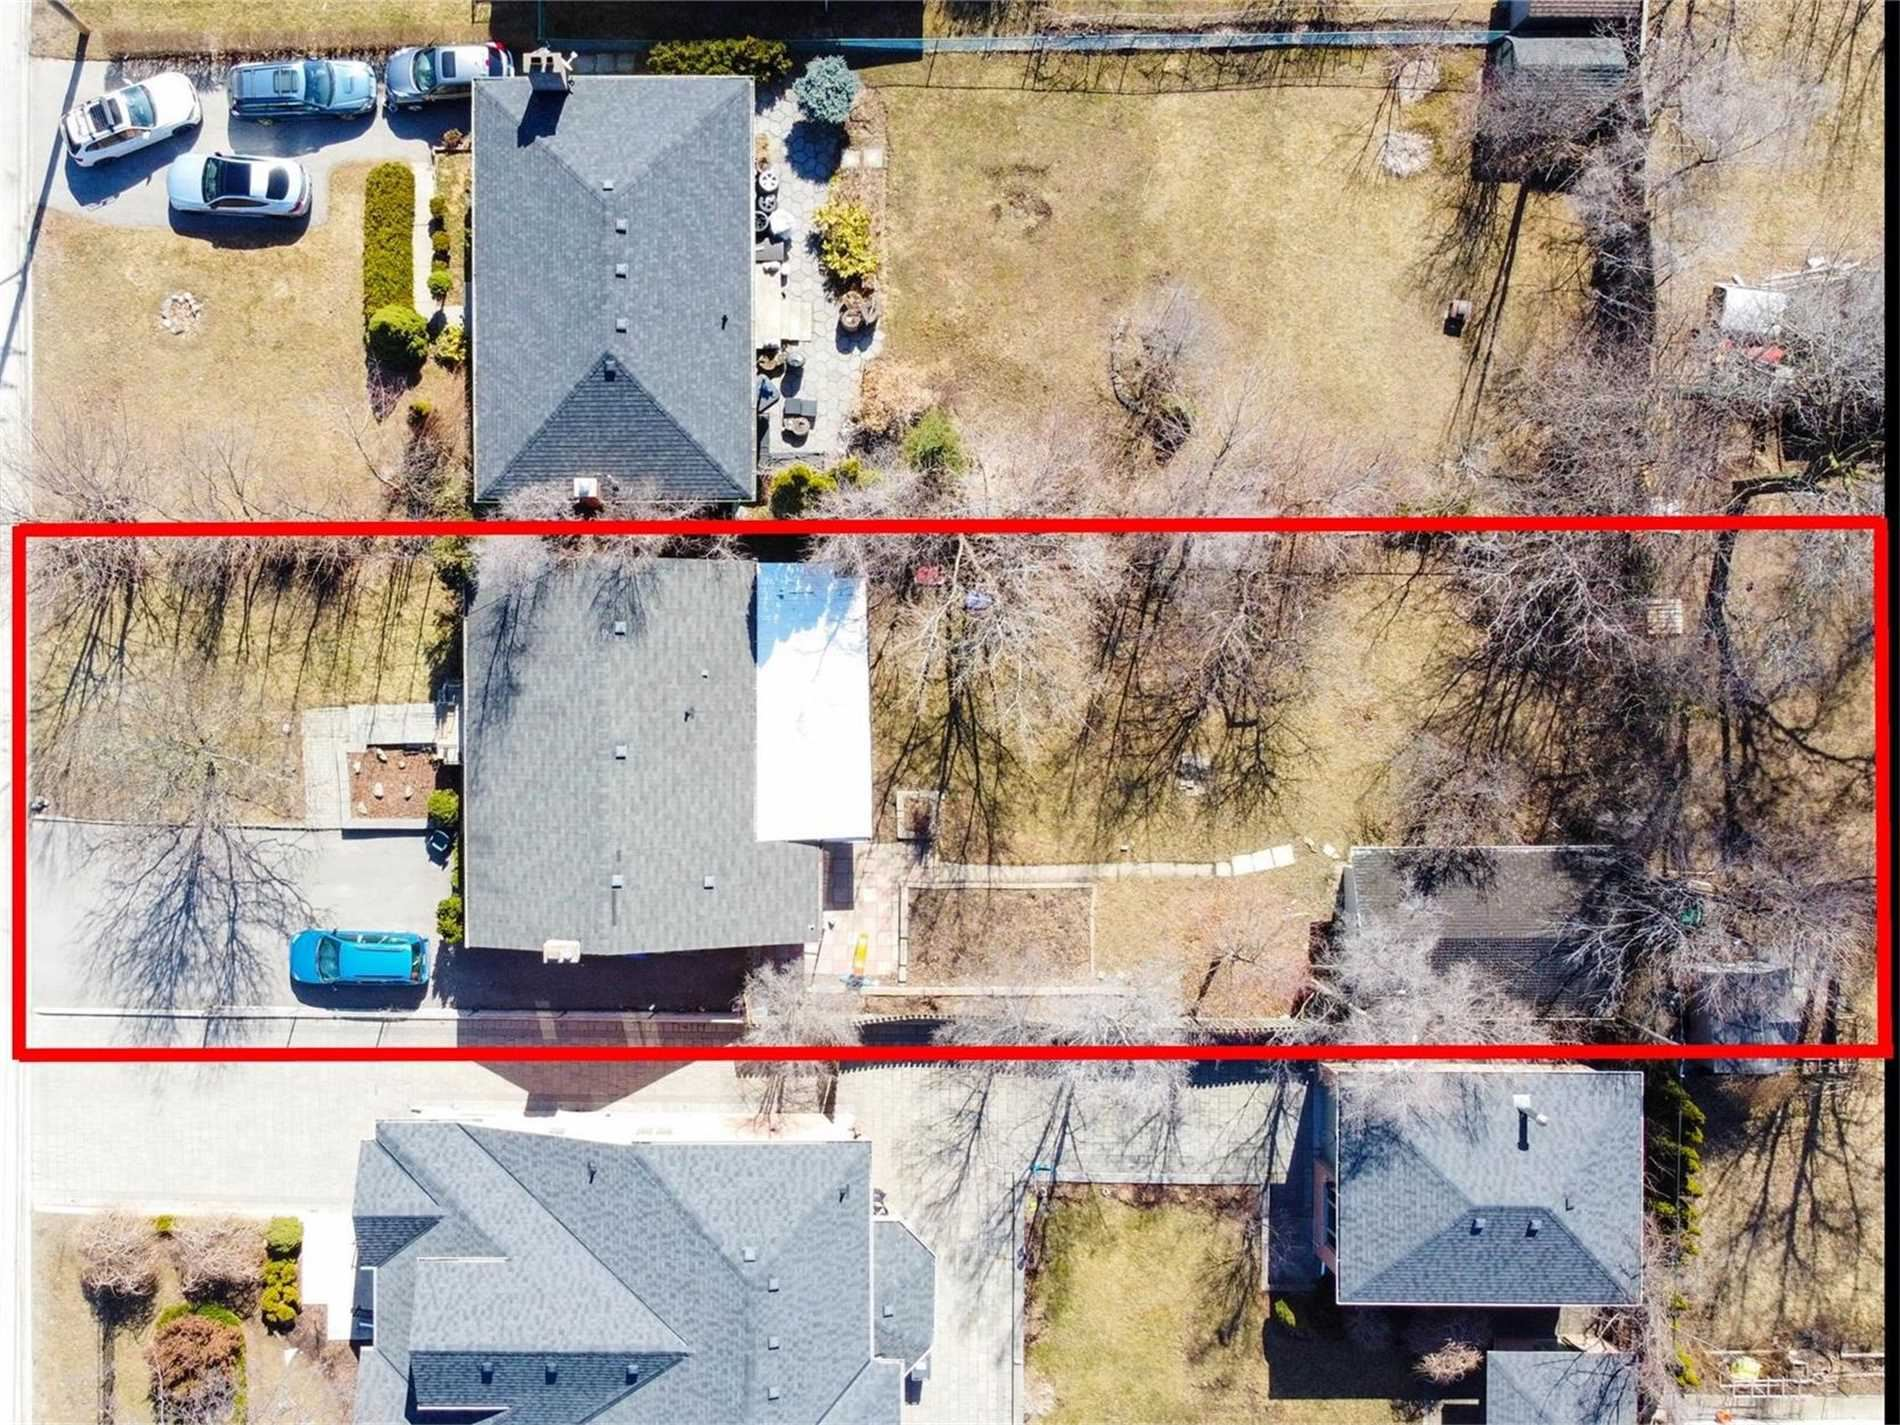 22 Arch Rd, Mississauga, ON L5M1M5 - MLS#: W5296836